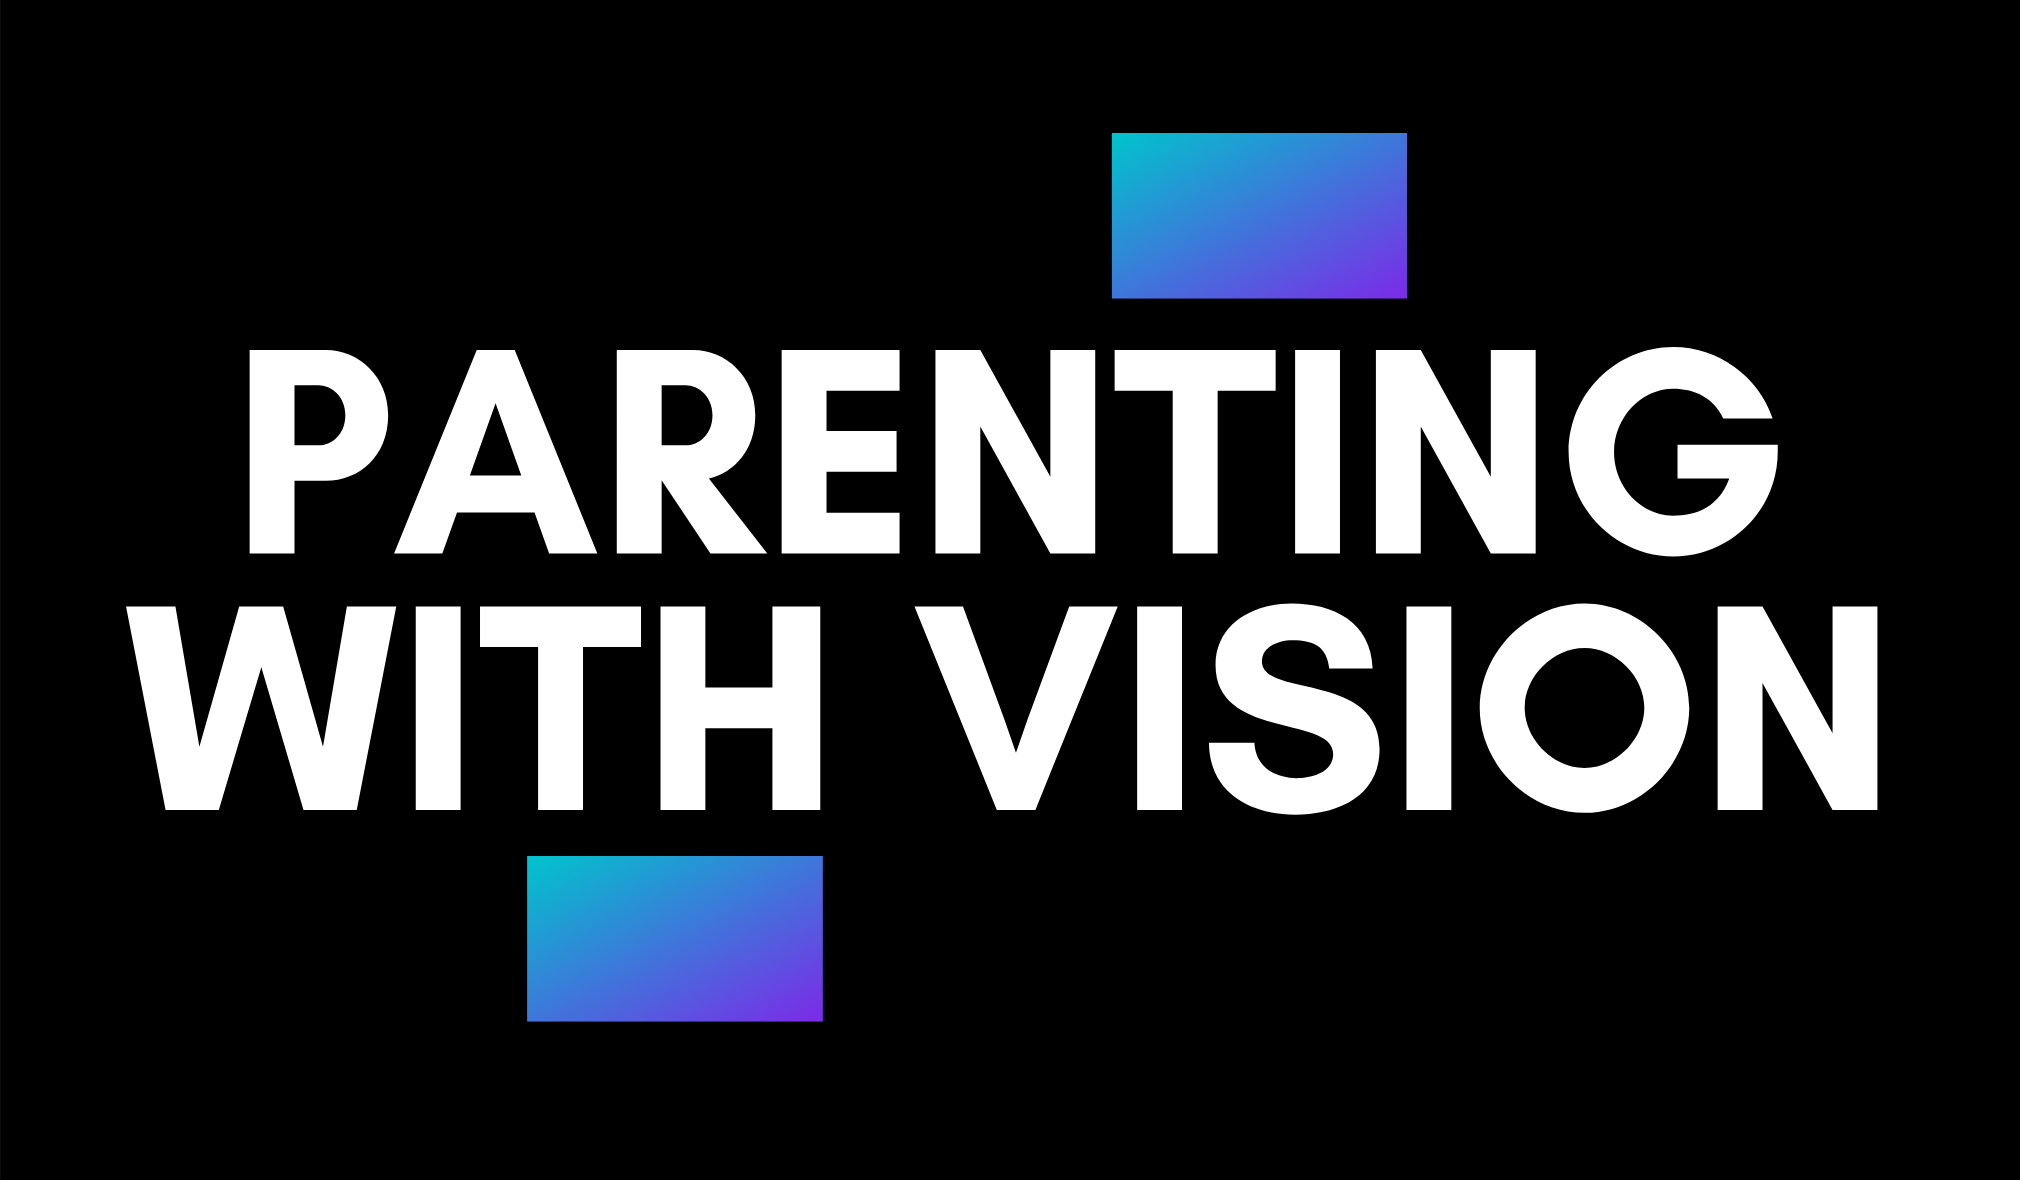 Parenting with vision